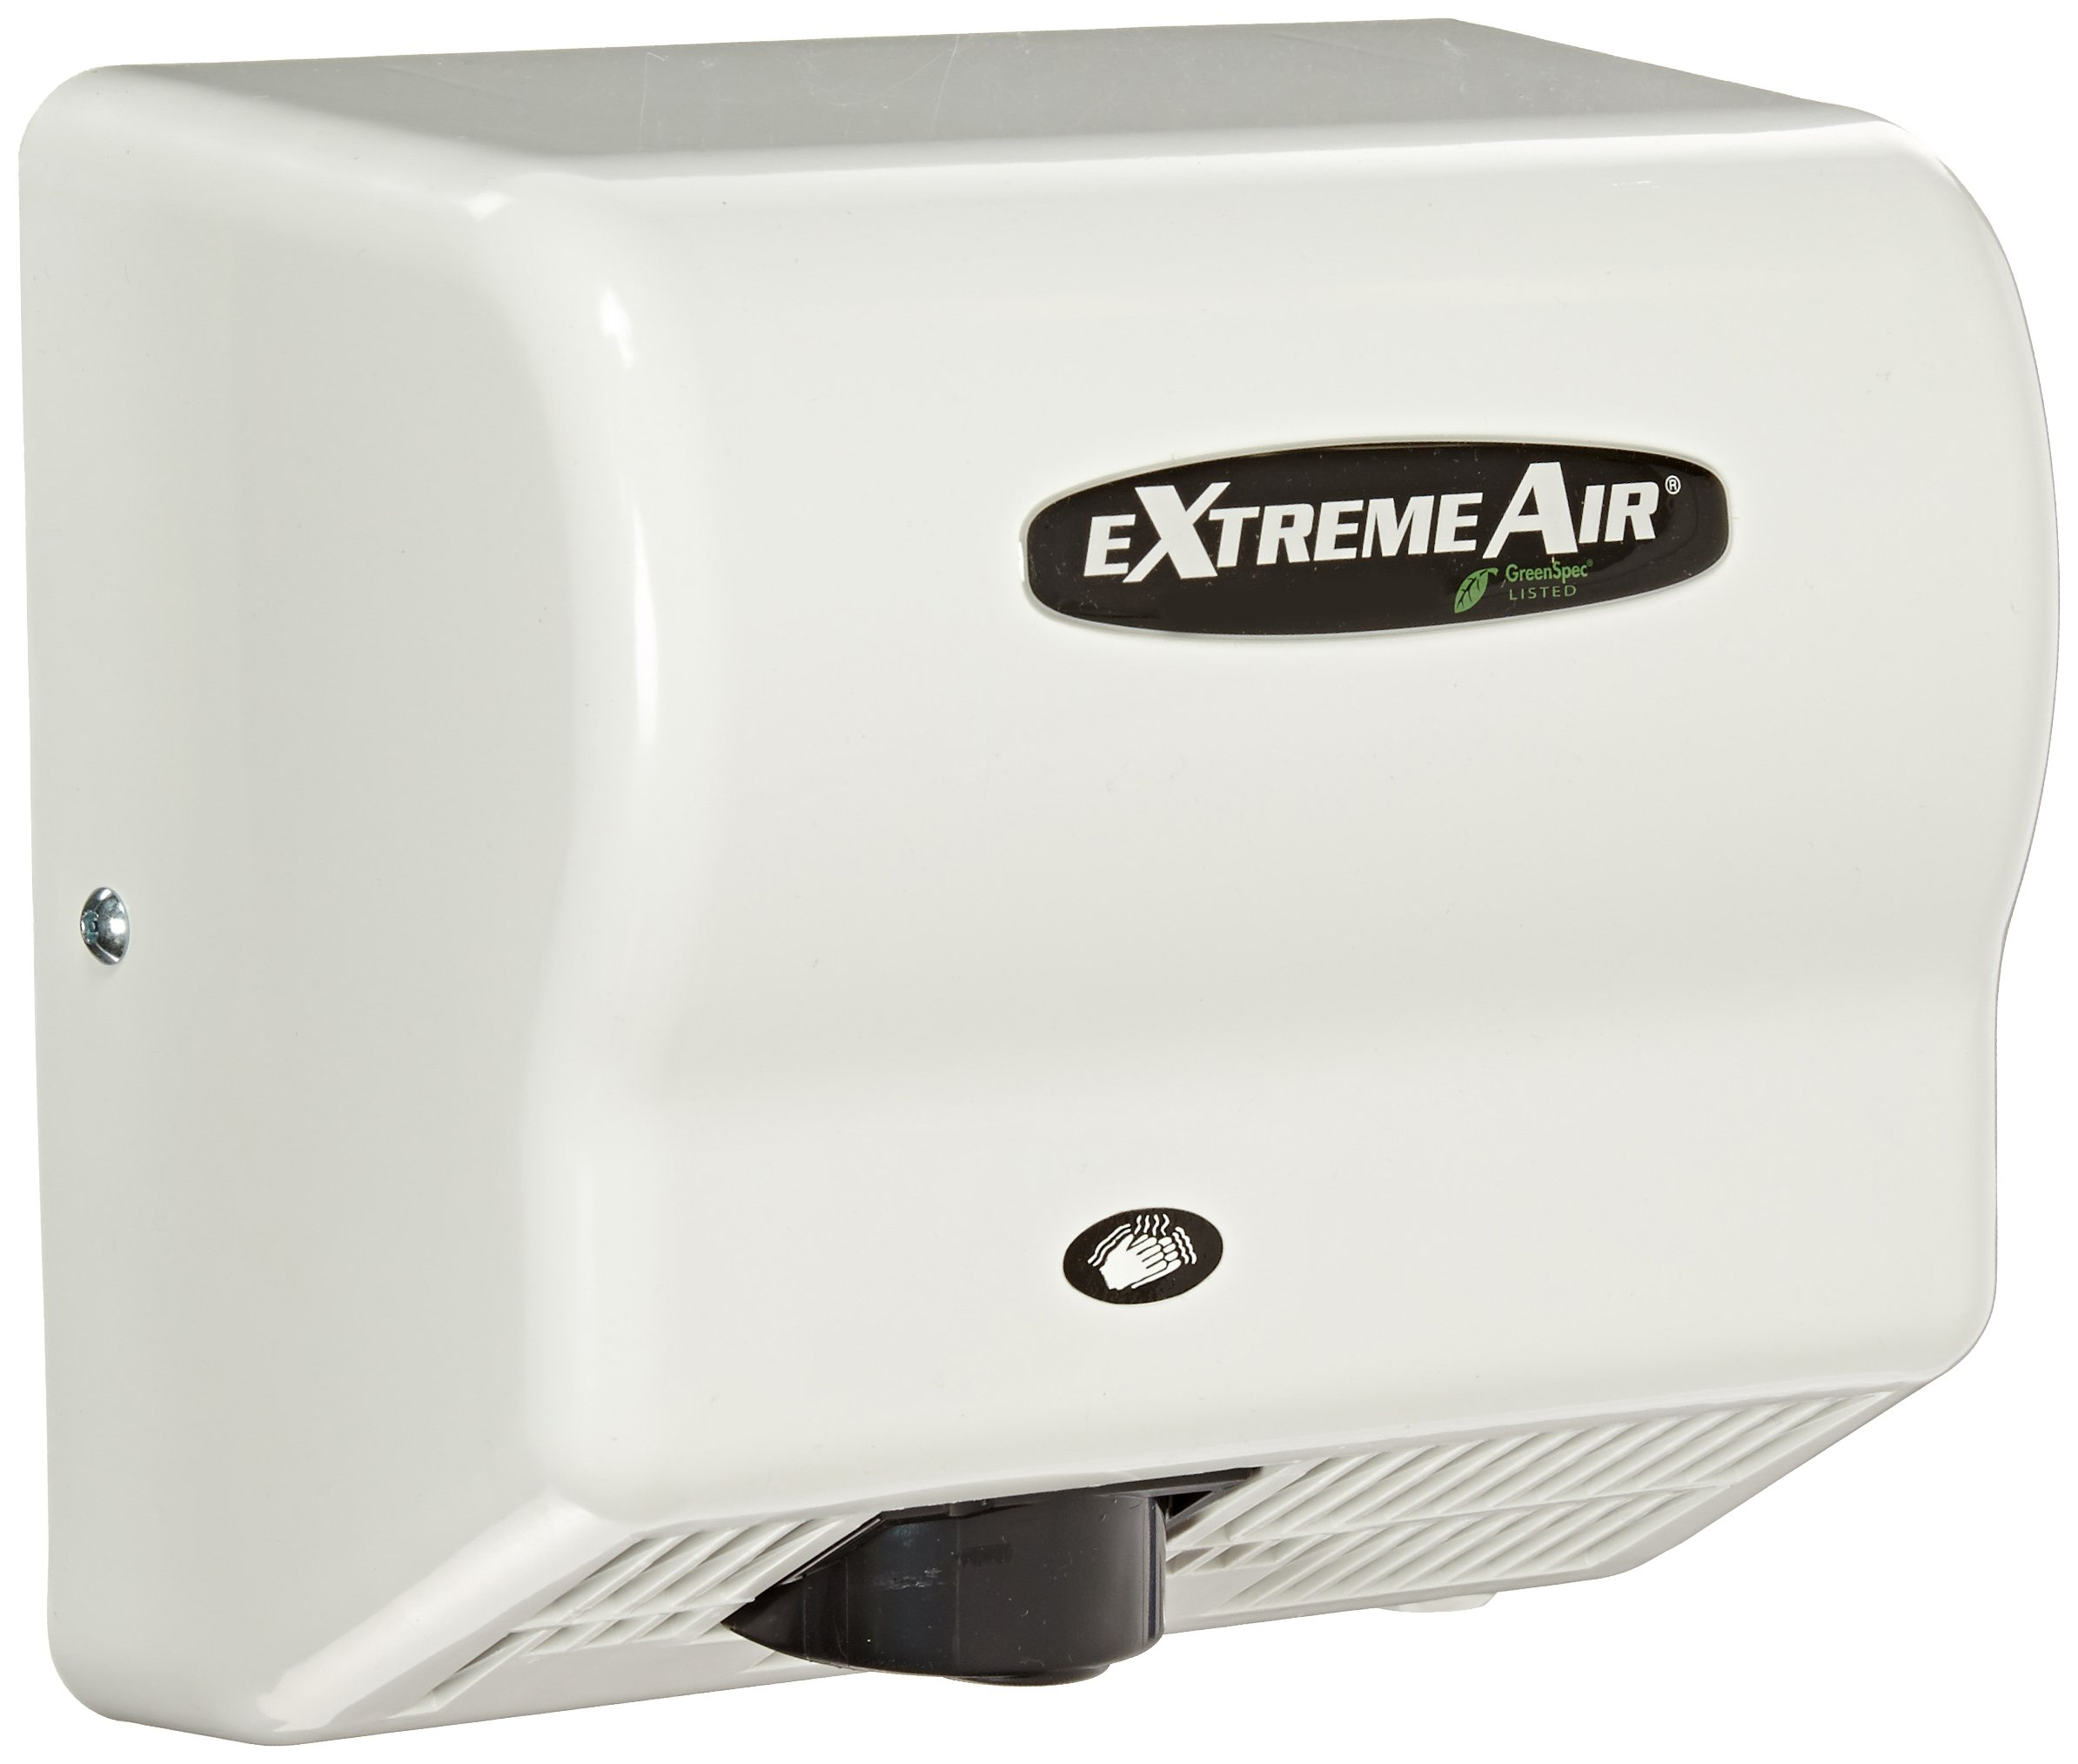 American Dryer ExtremeAir GXT9 ABS Cover High-Speed Automatic Hand Dryer, 10-12 Second Dries, 100-240V, 1,500W Maximum Power, 50/60Hz, White